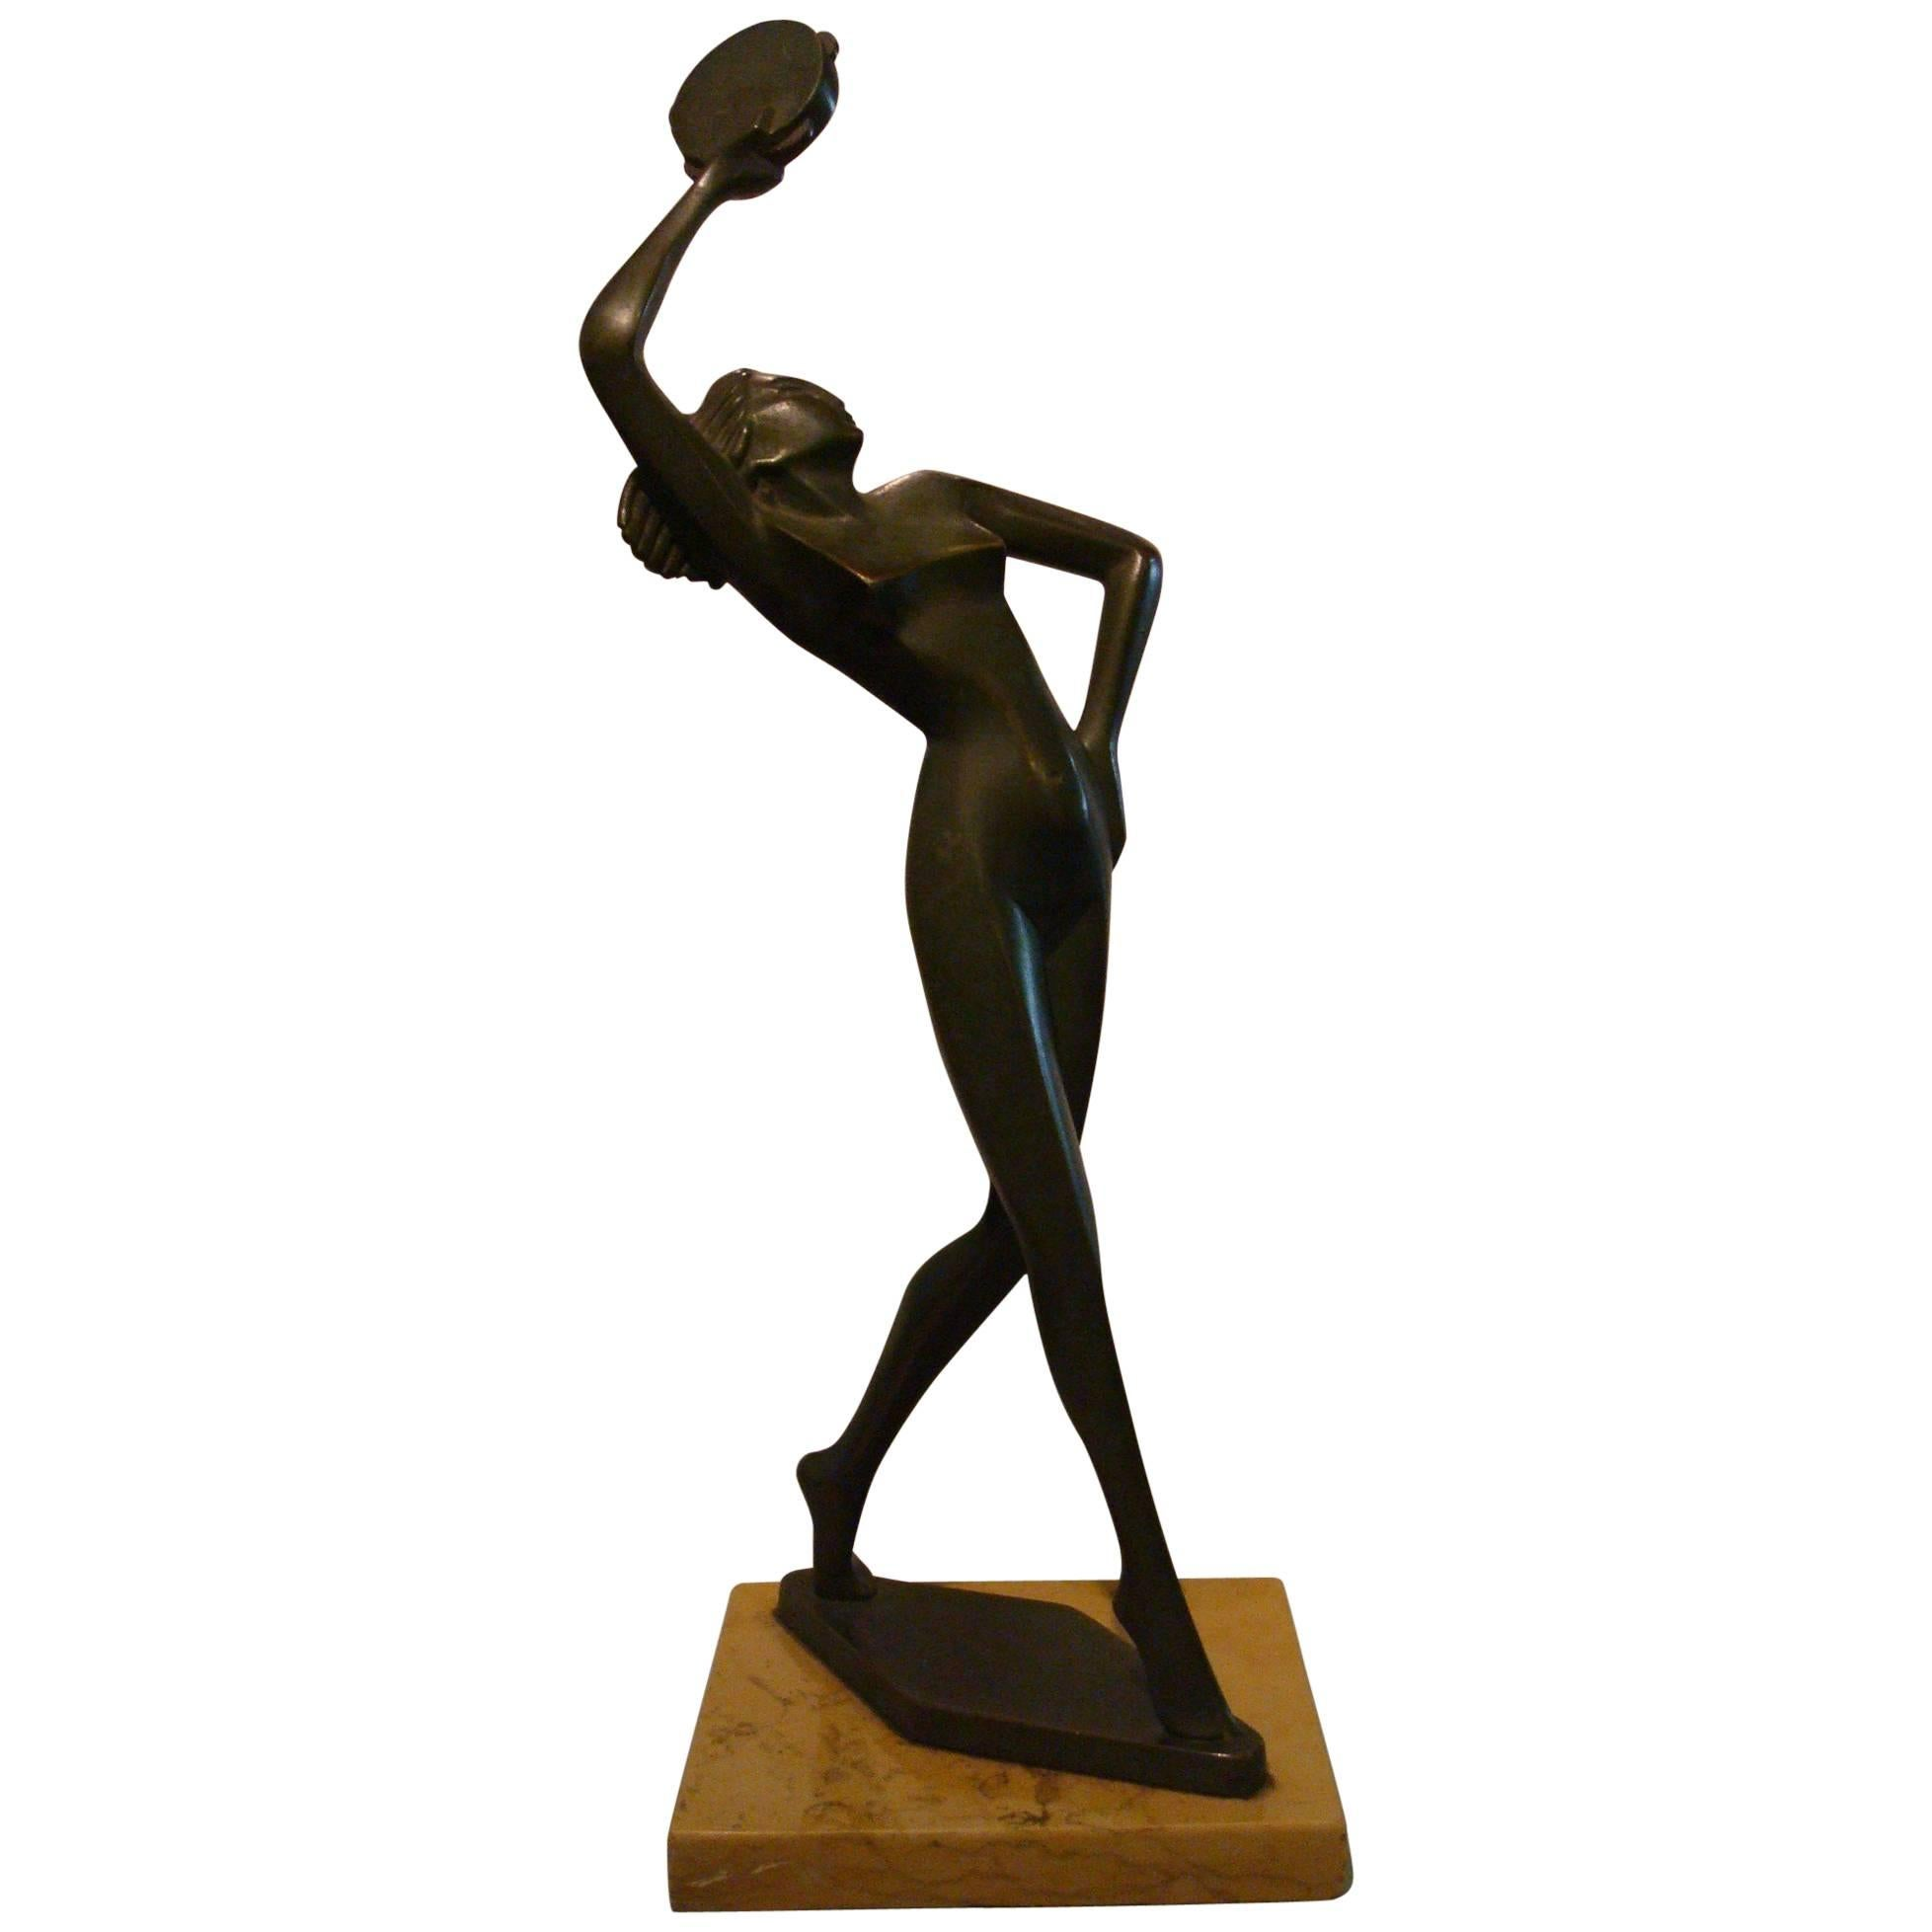 Art Deco Figure Nude Woman Dancer Bronze Sculpture - Italy